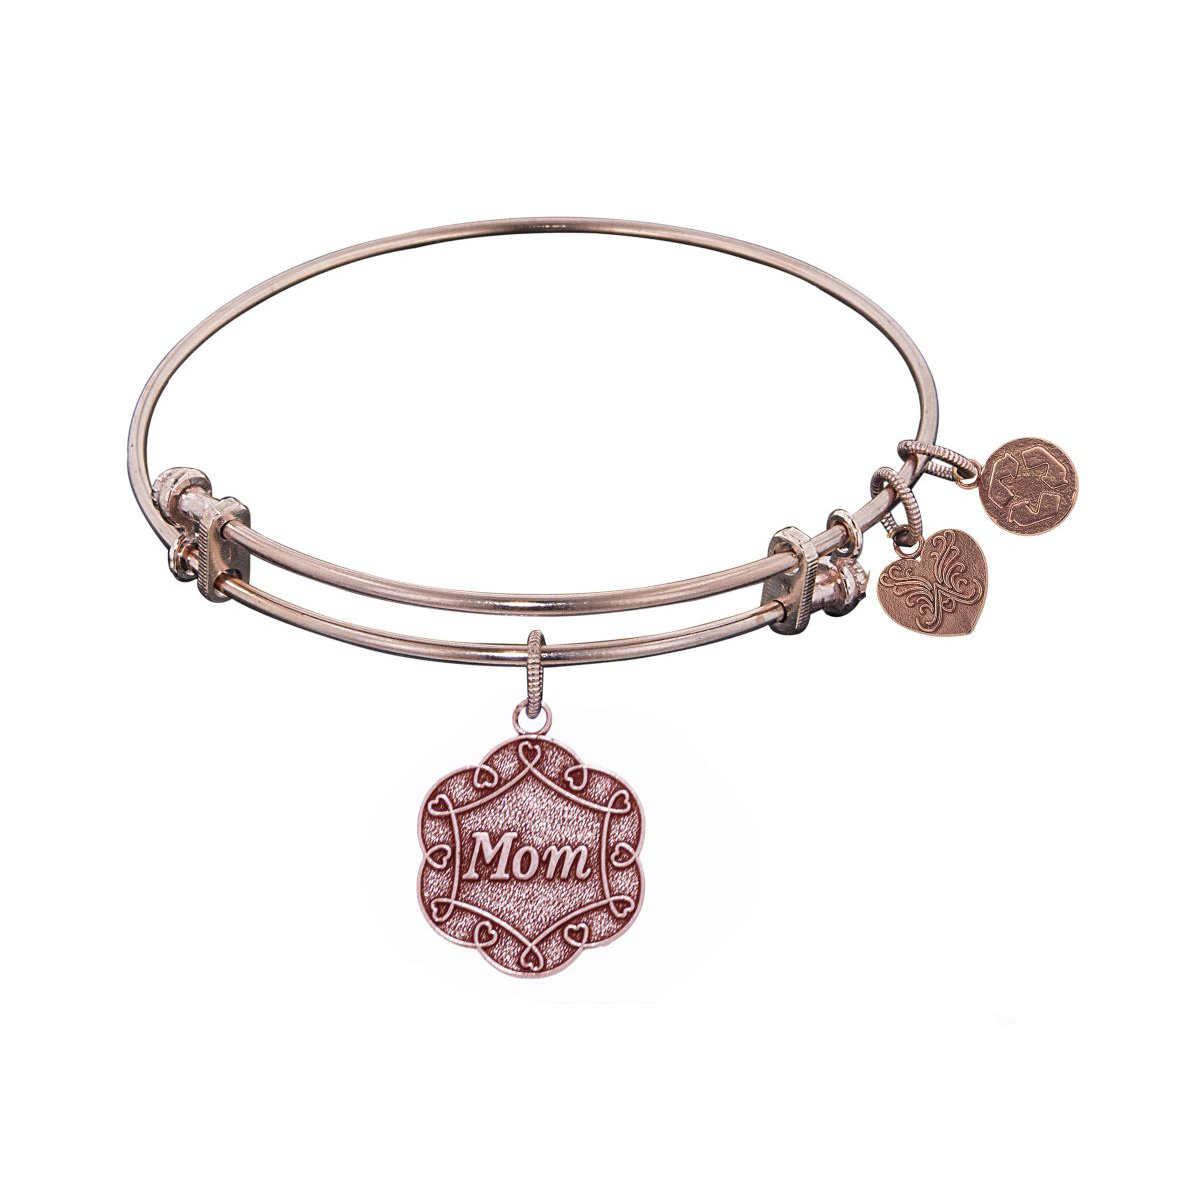 Pink Stipple Finish Brass Mom On 7 Leaf Flower Like Charm Angelica Bangle Bracelet, 7.25″